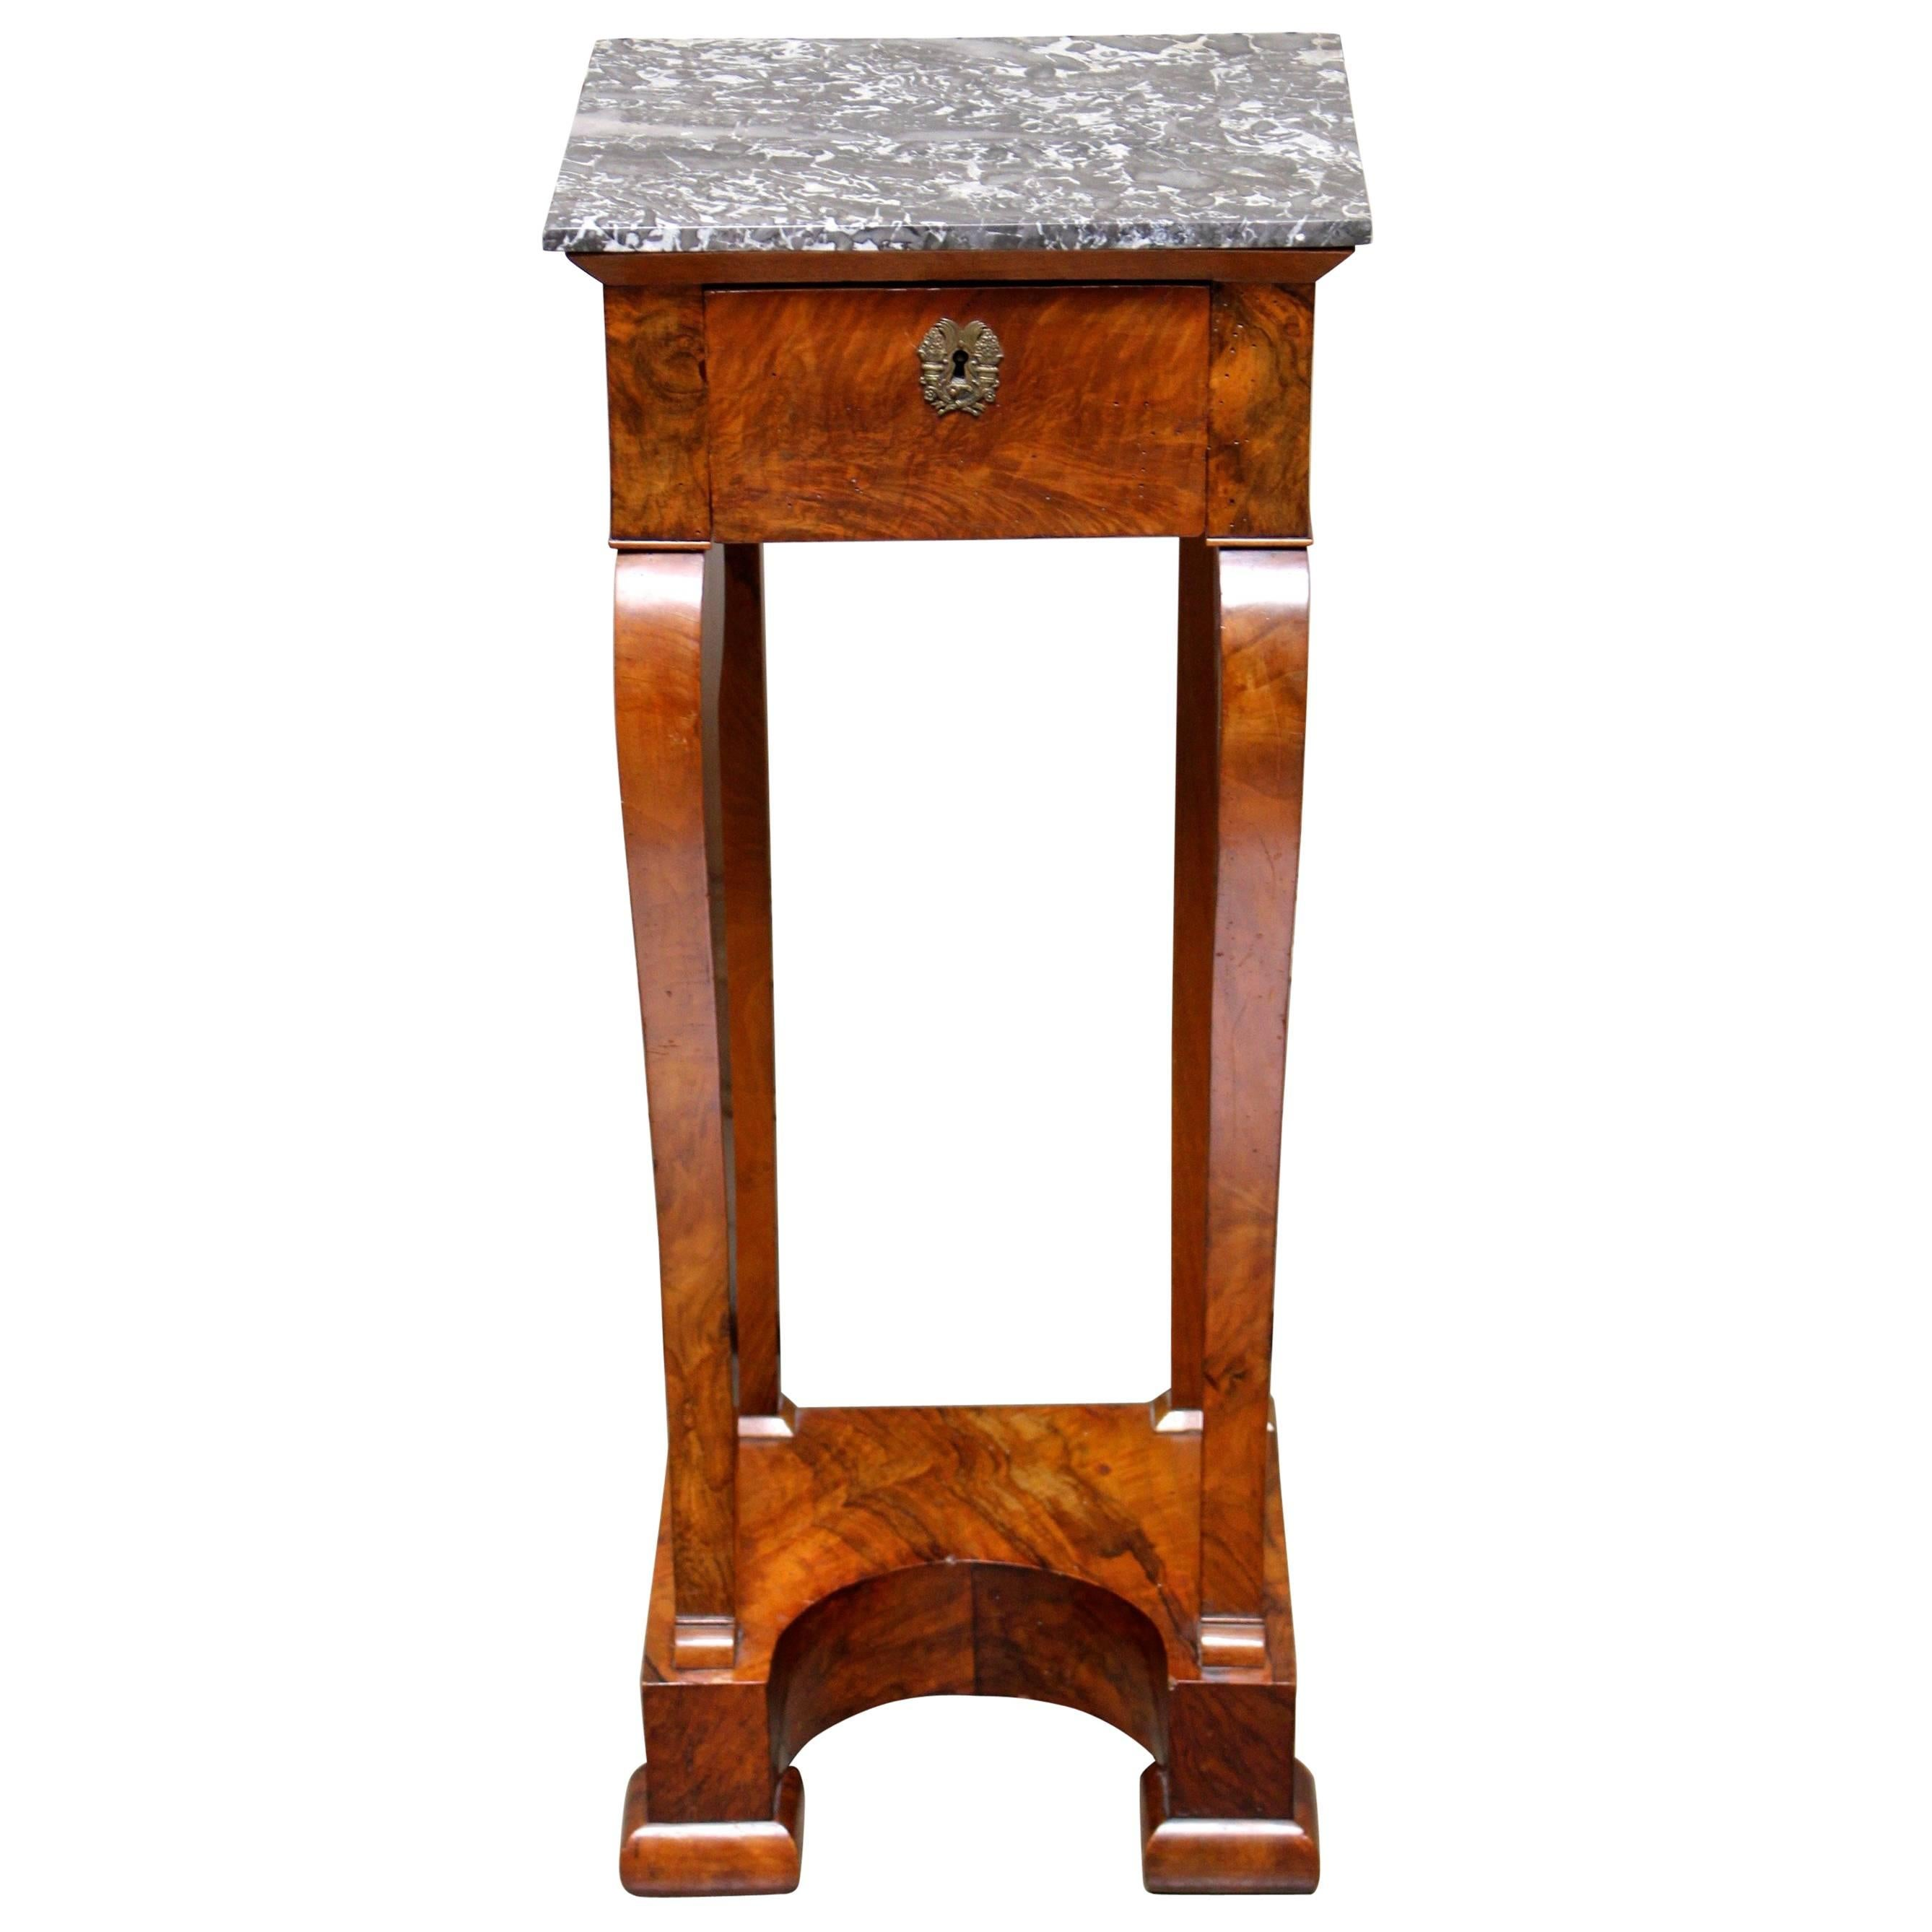 French Charles X Mahogany Table with a Marble Top